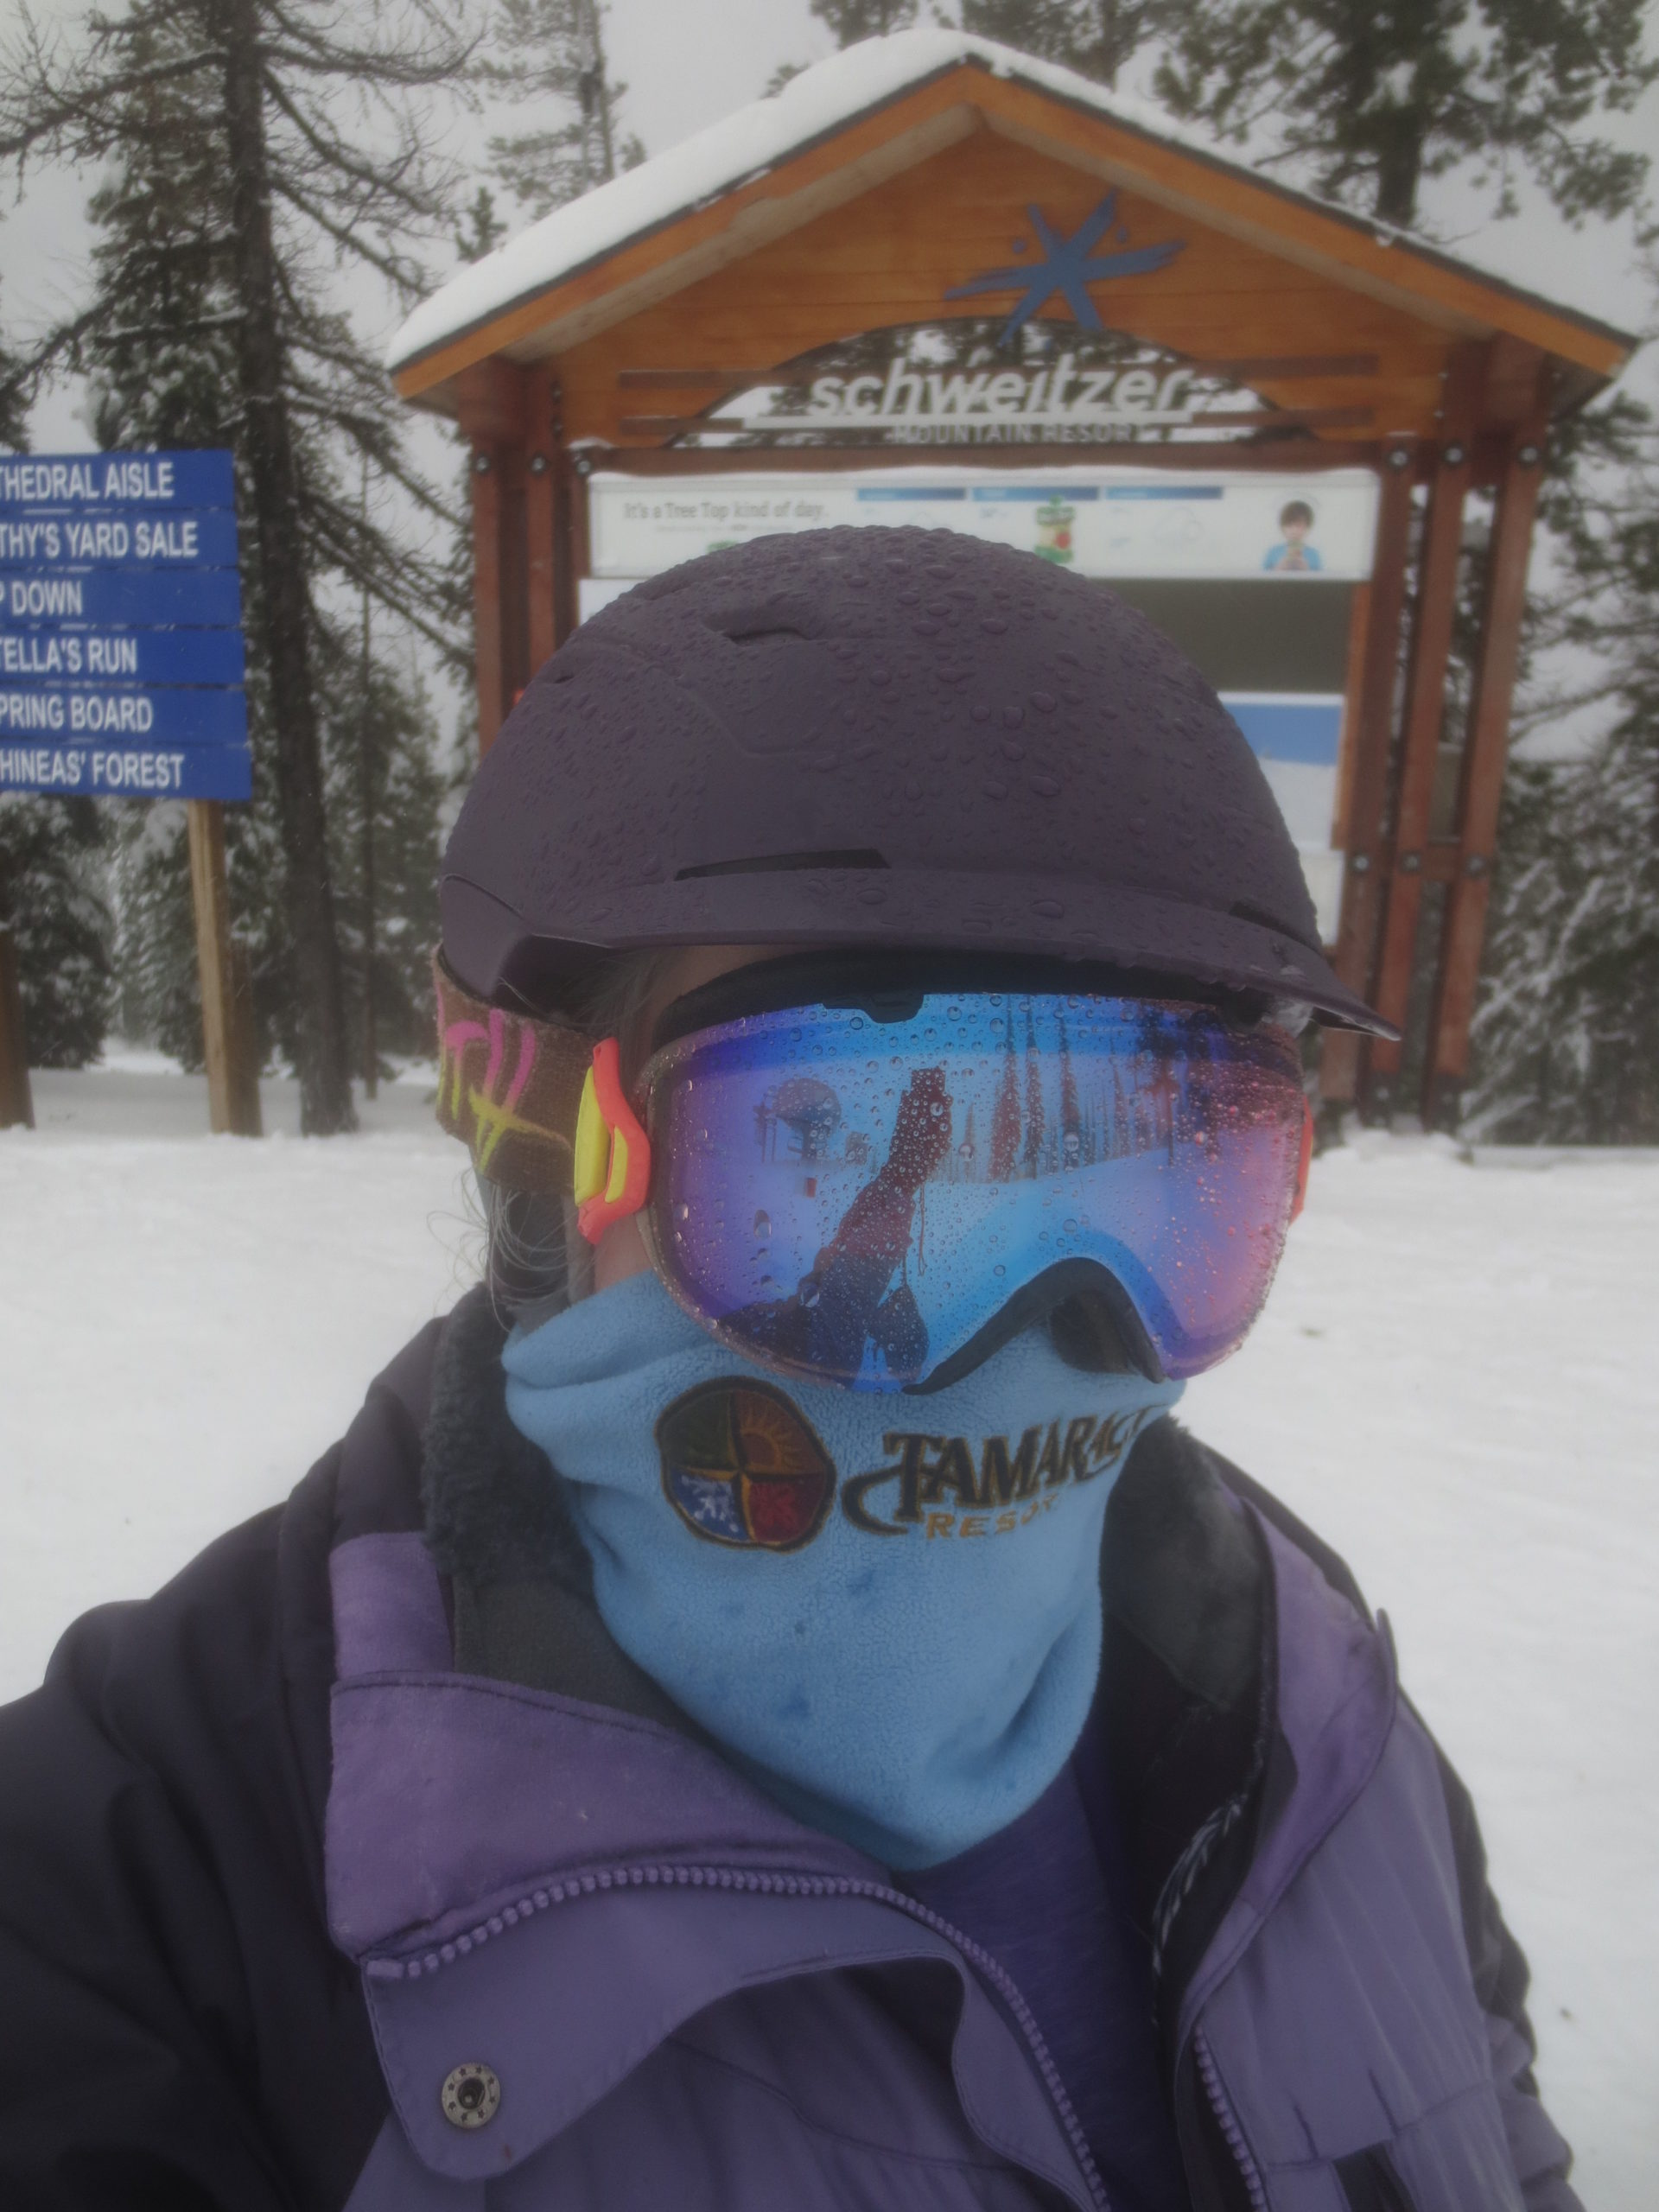 skier in helmet and goggles with raindrops on them